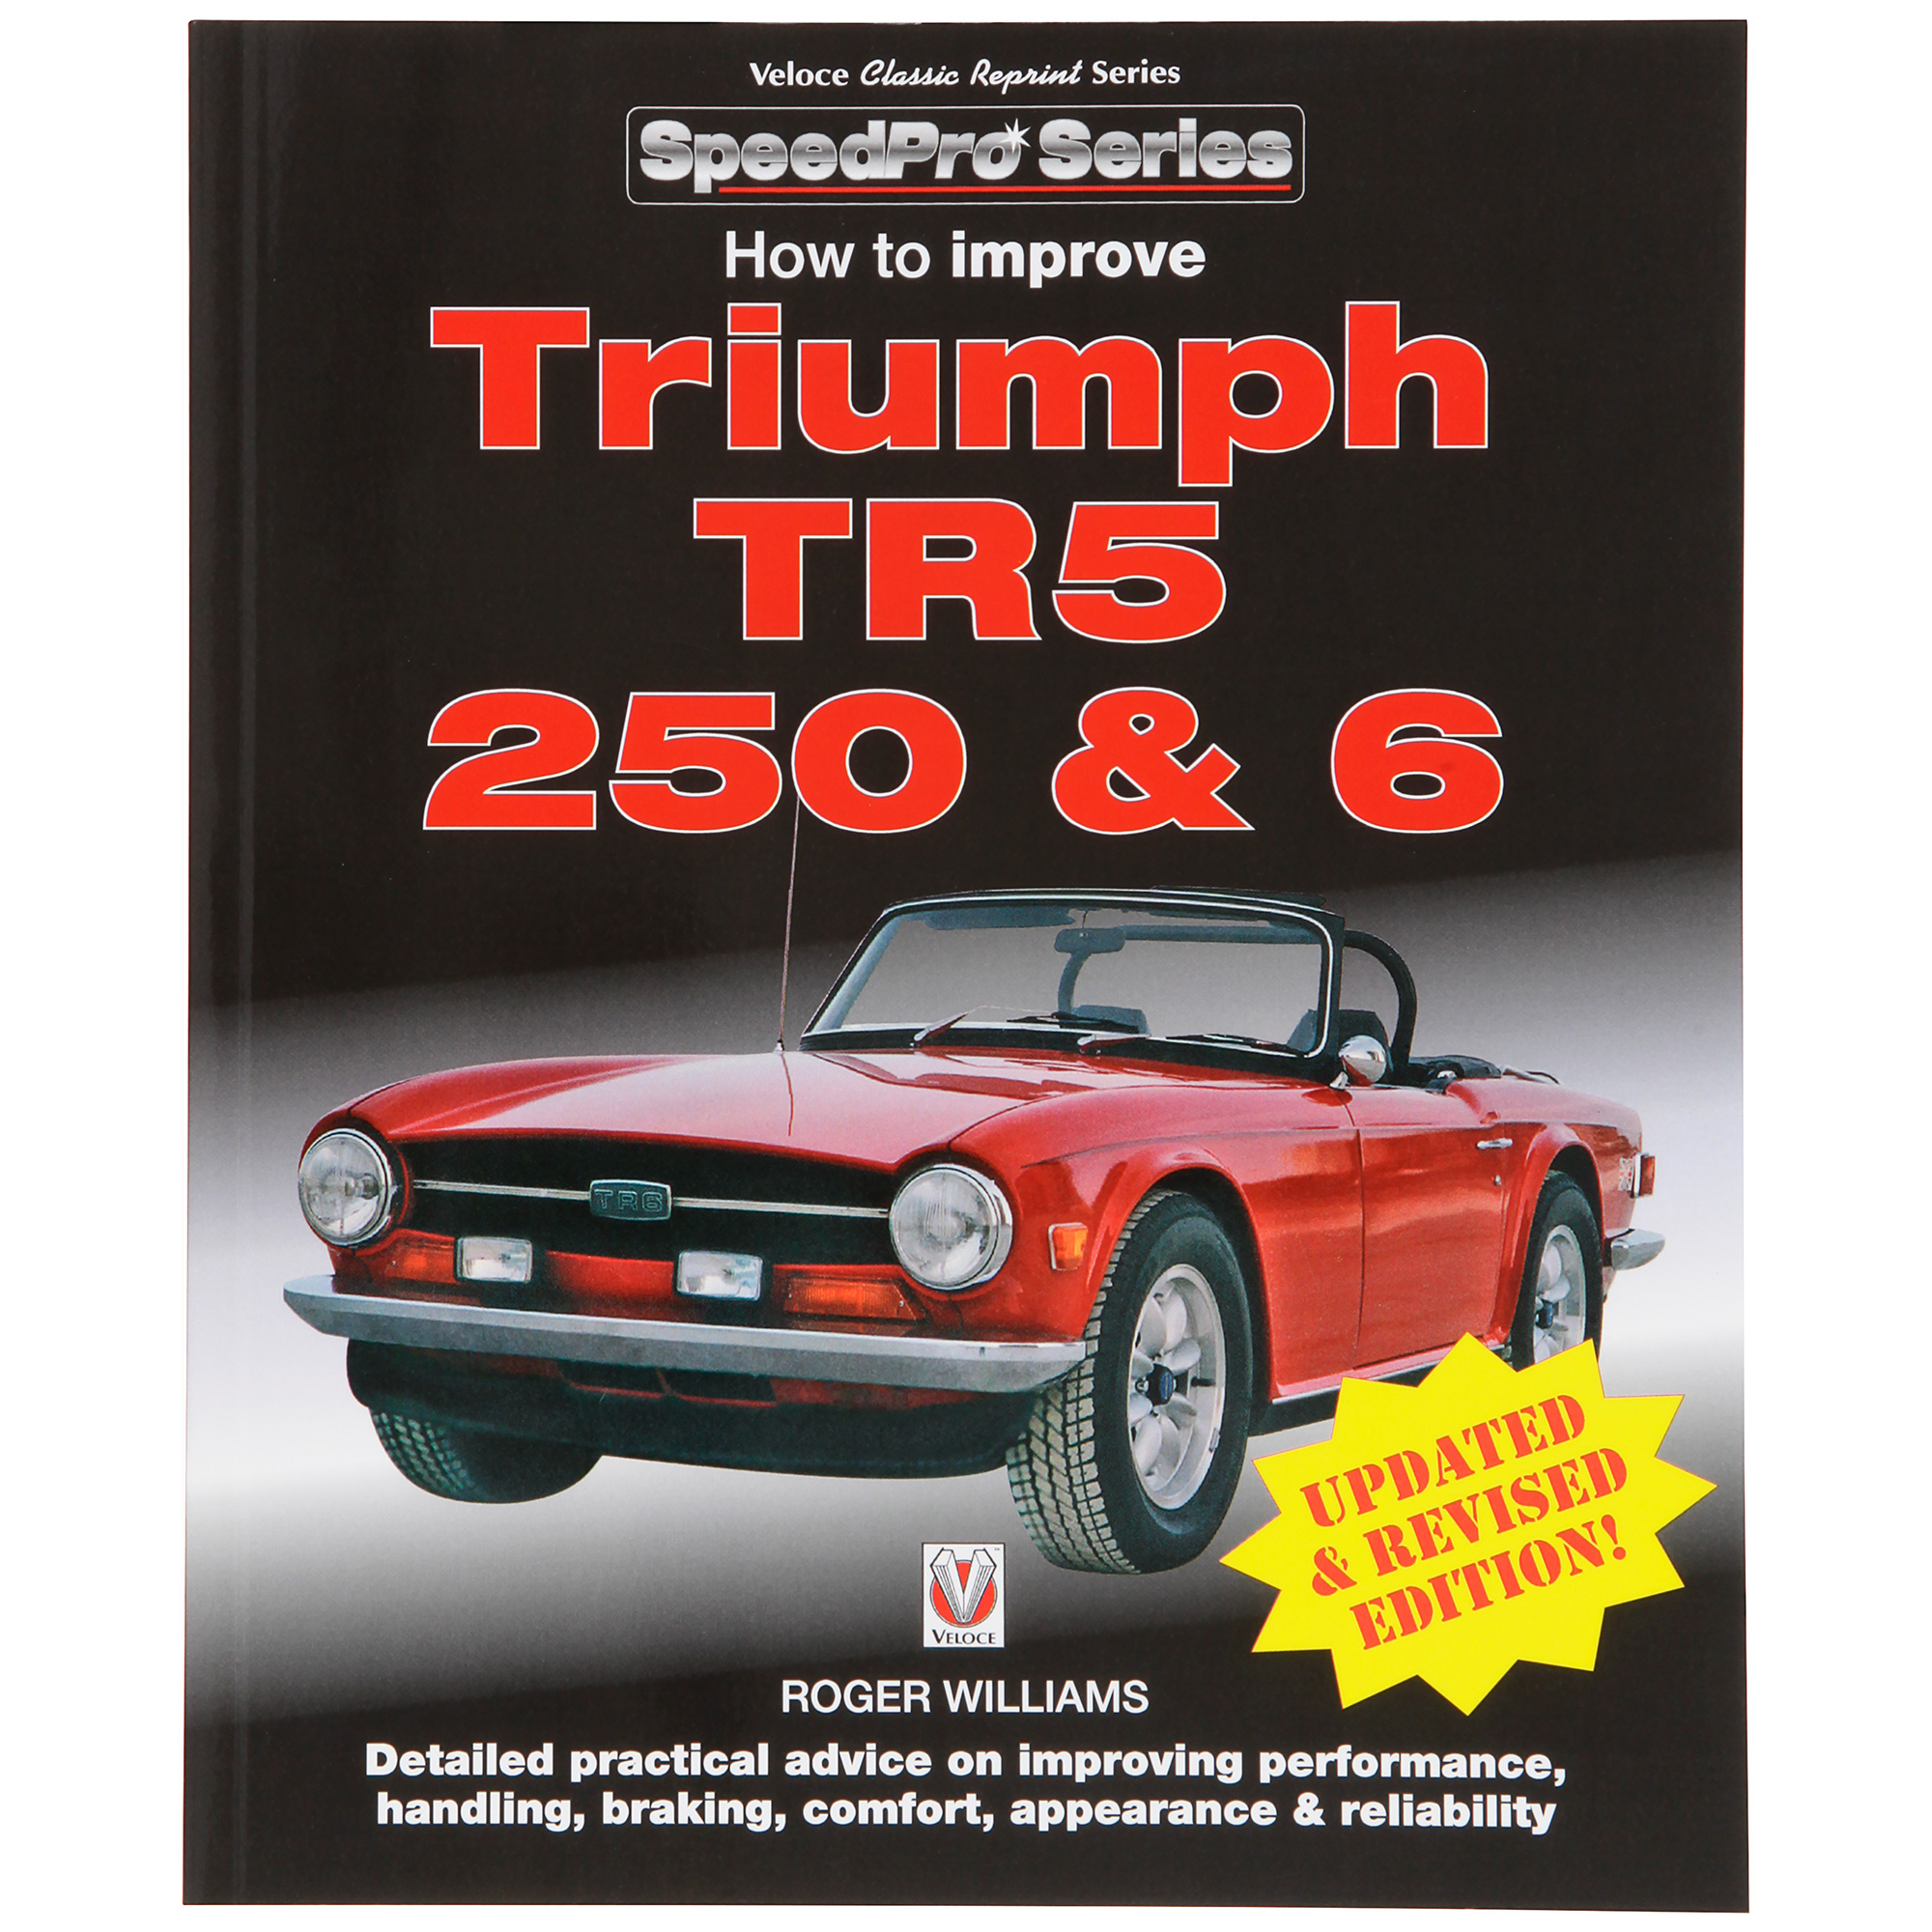 546 100 Relay Starter Moss Motors 76 Triumph Tr6 Wiring Diagram Book How To Improve Tr5 250 6